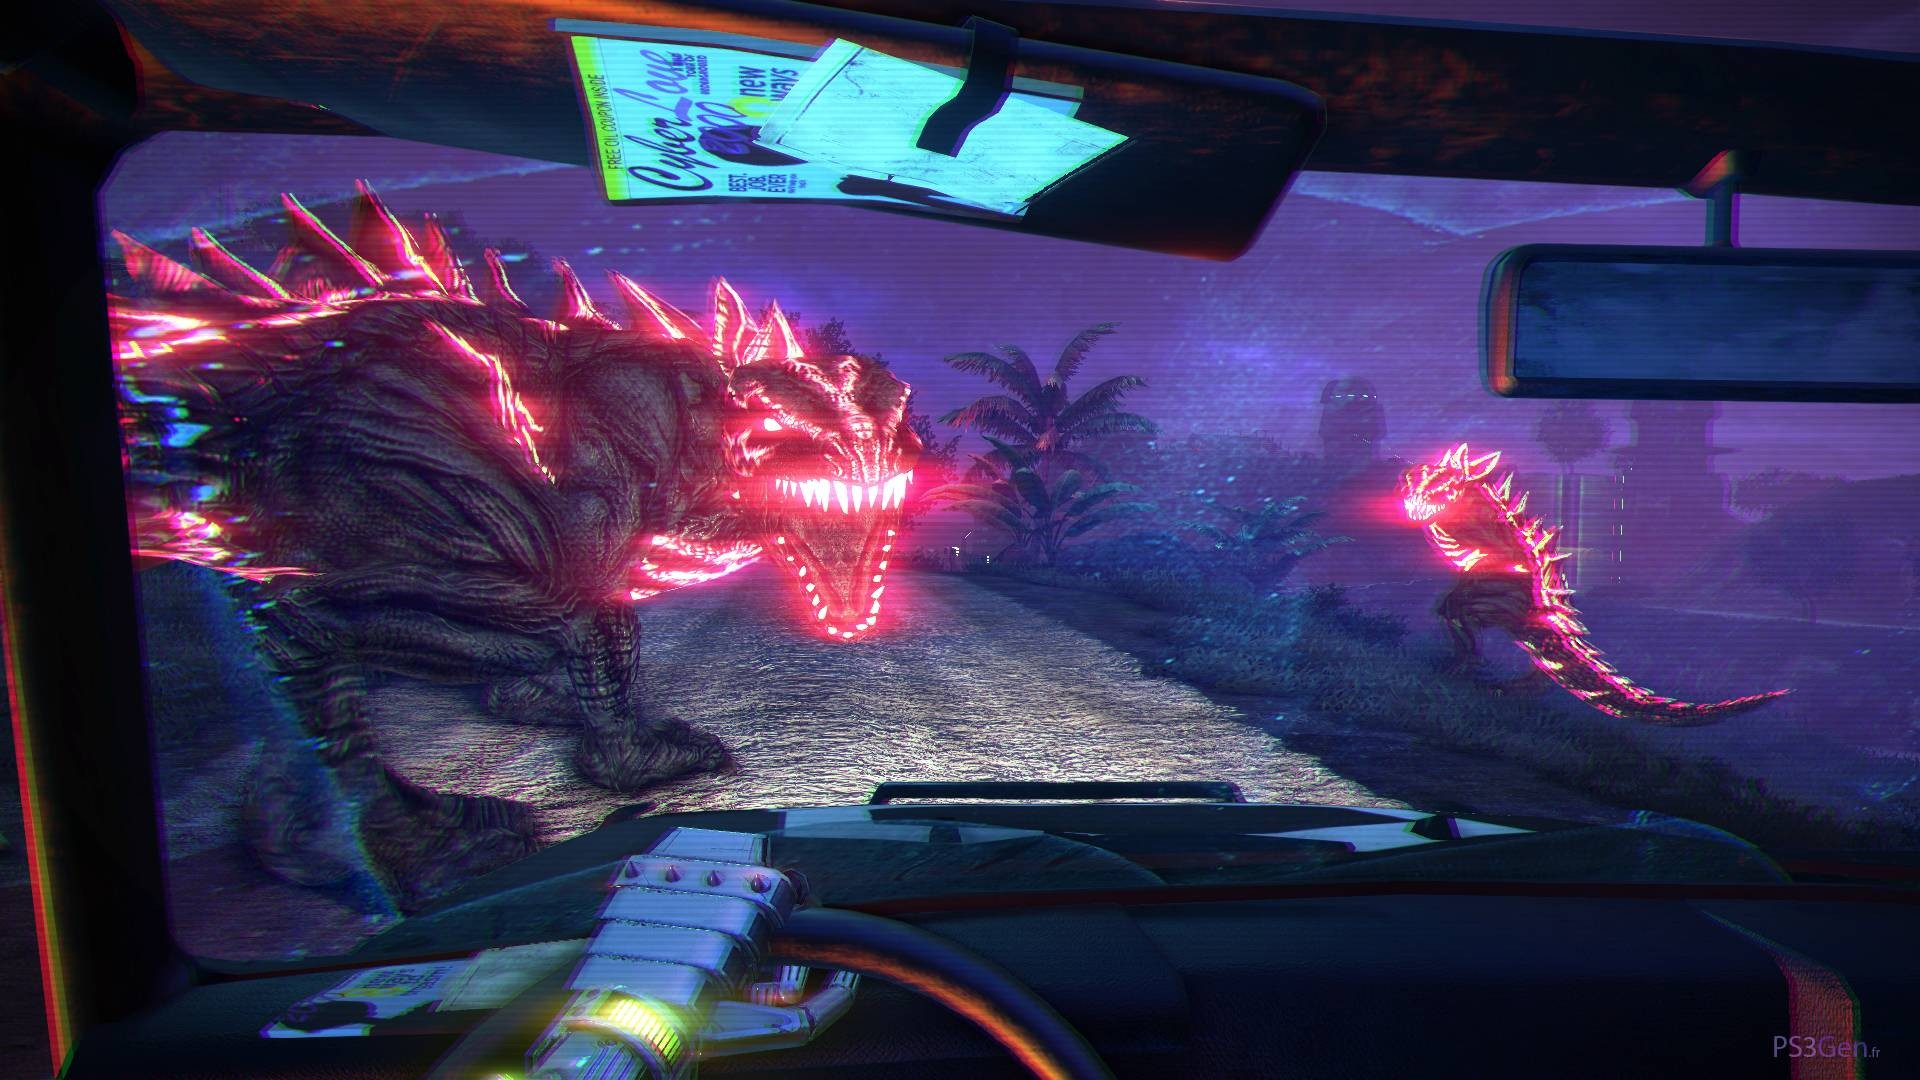 Far Cry 3: Blood Dragon full game free pc, download, play